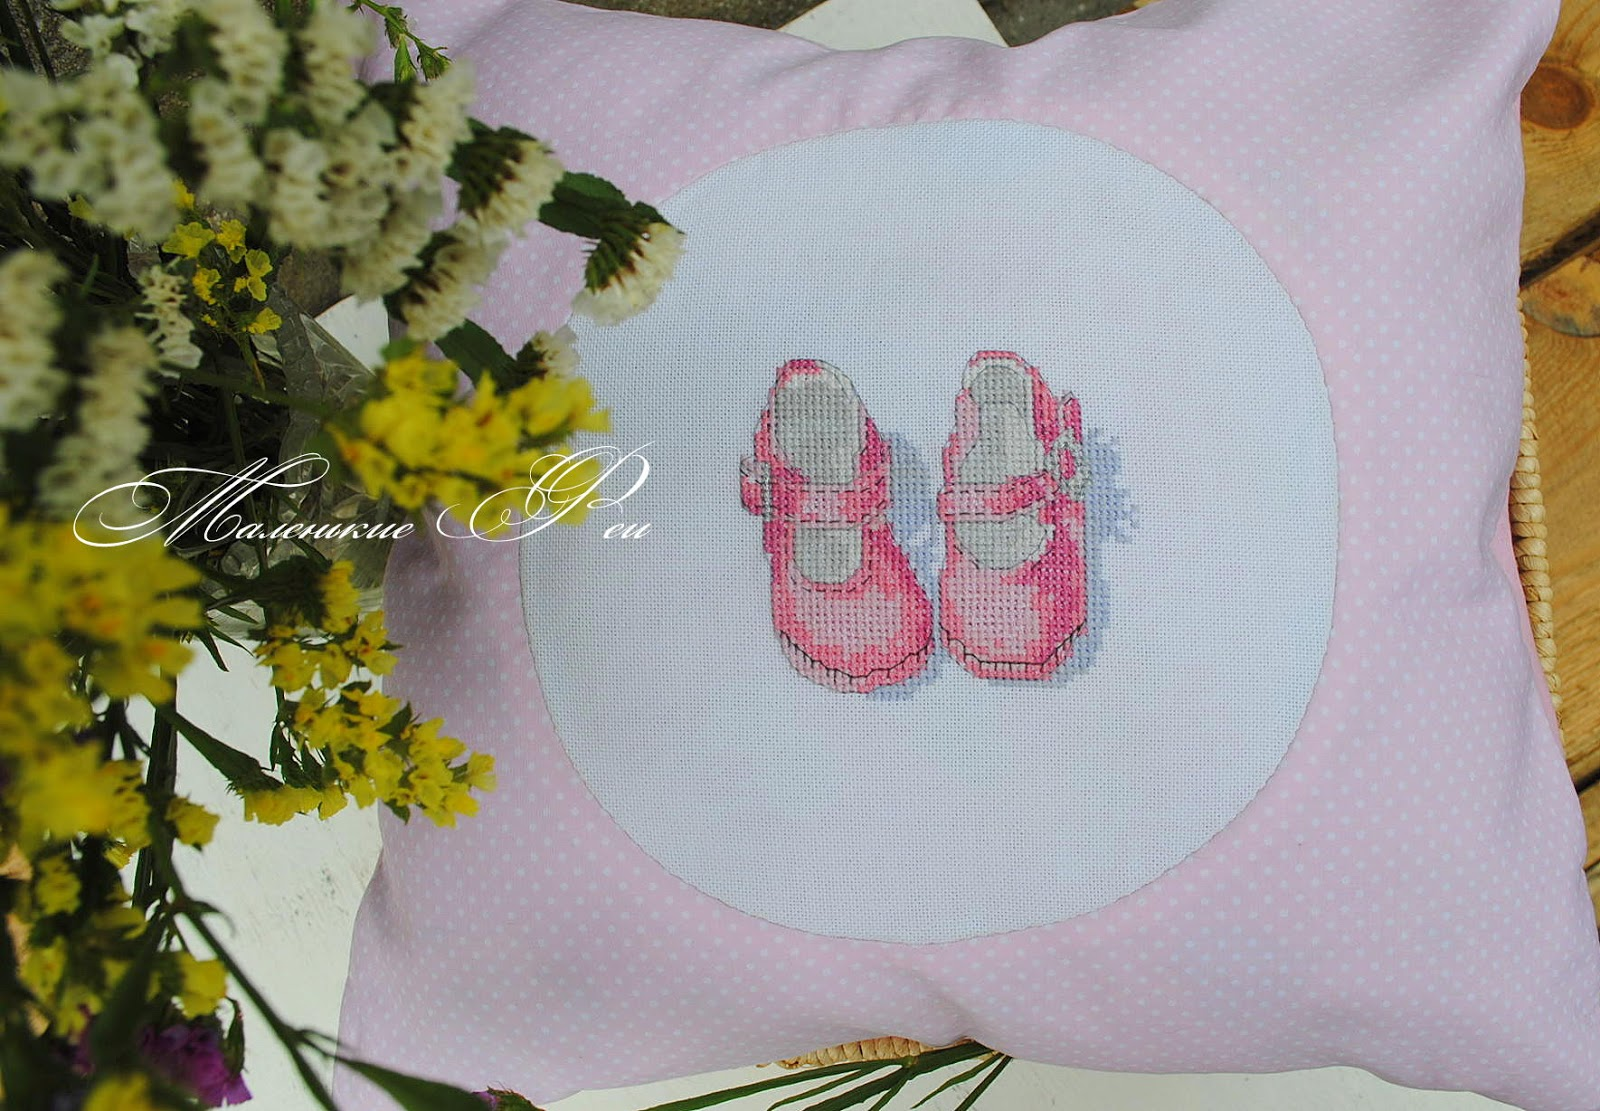 newborn, kids, baby, gift, sewing, embroidery, cross stitch, pink, girl, kids, buy, handmade, shoes, slippers, booties, natural, pillow, fairies, beautiful,